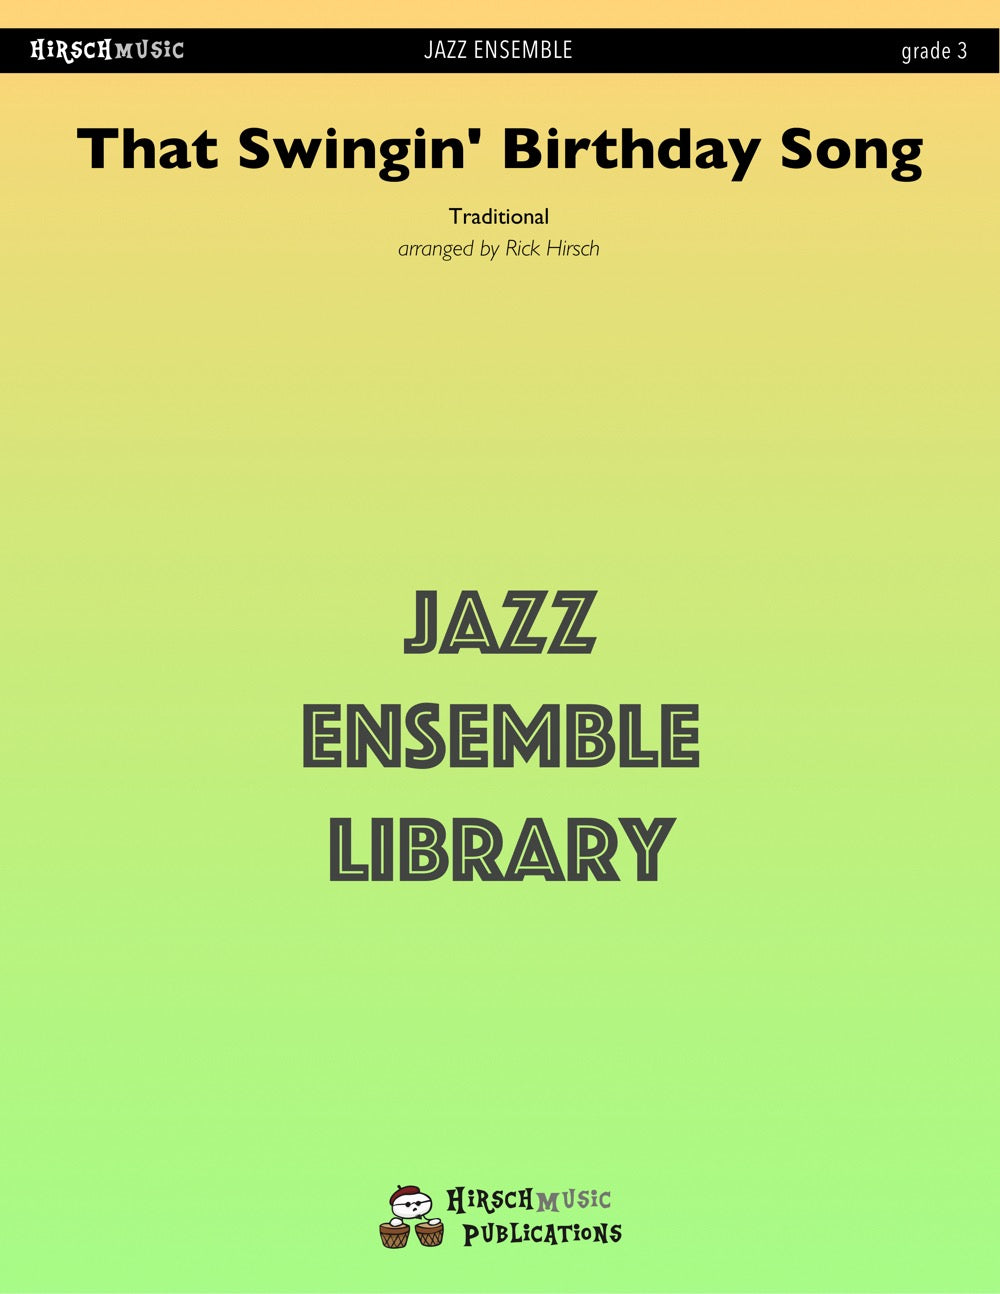 That Swingin' Birthday Song